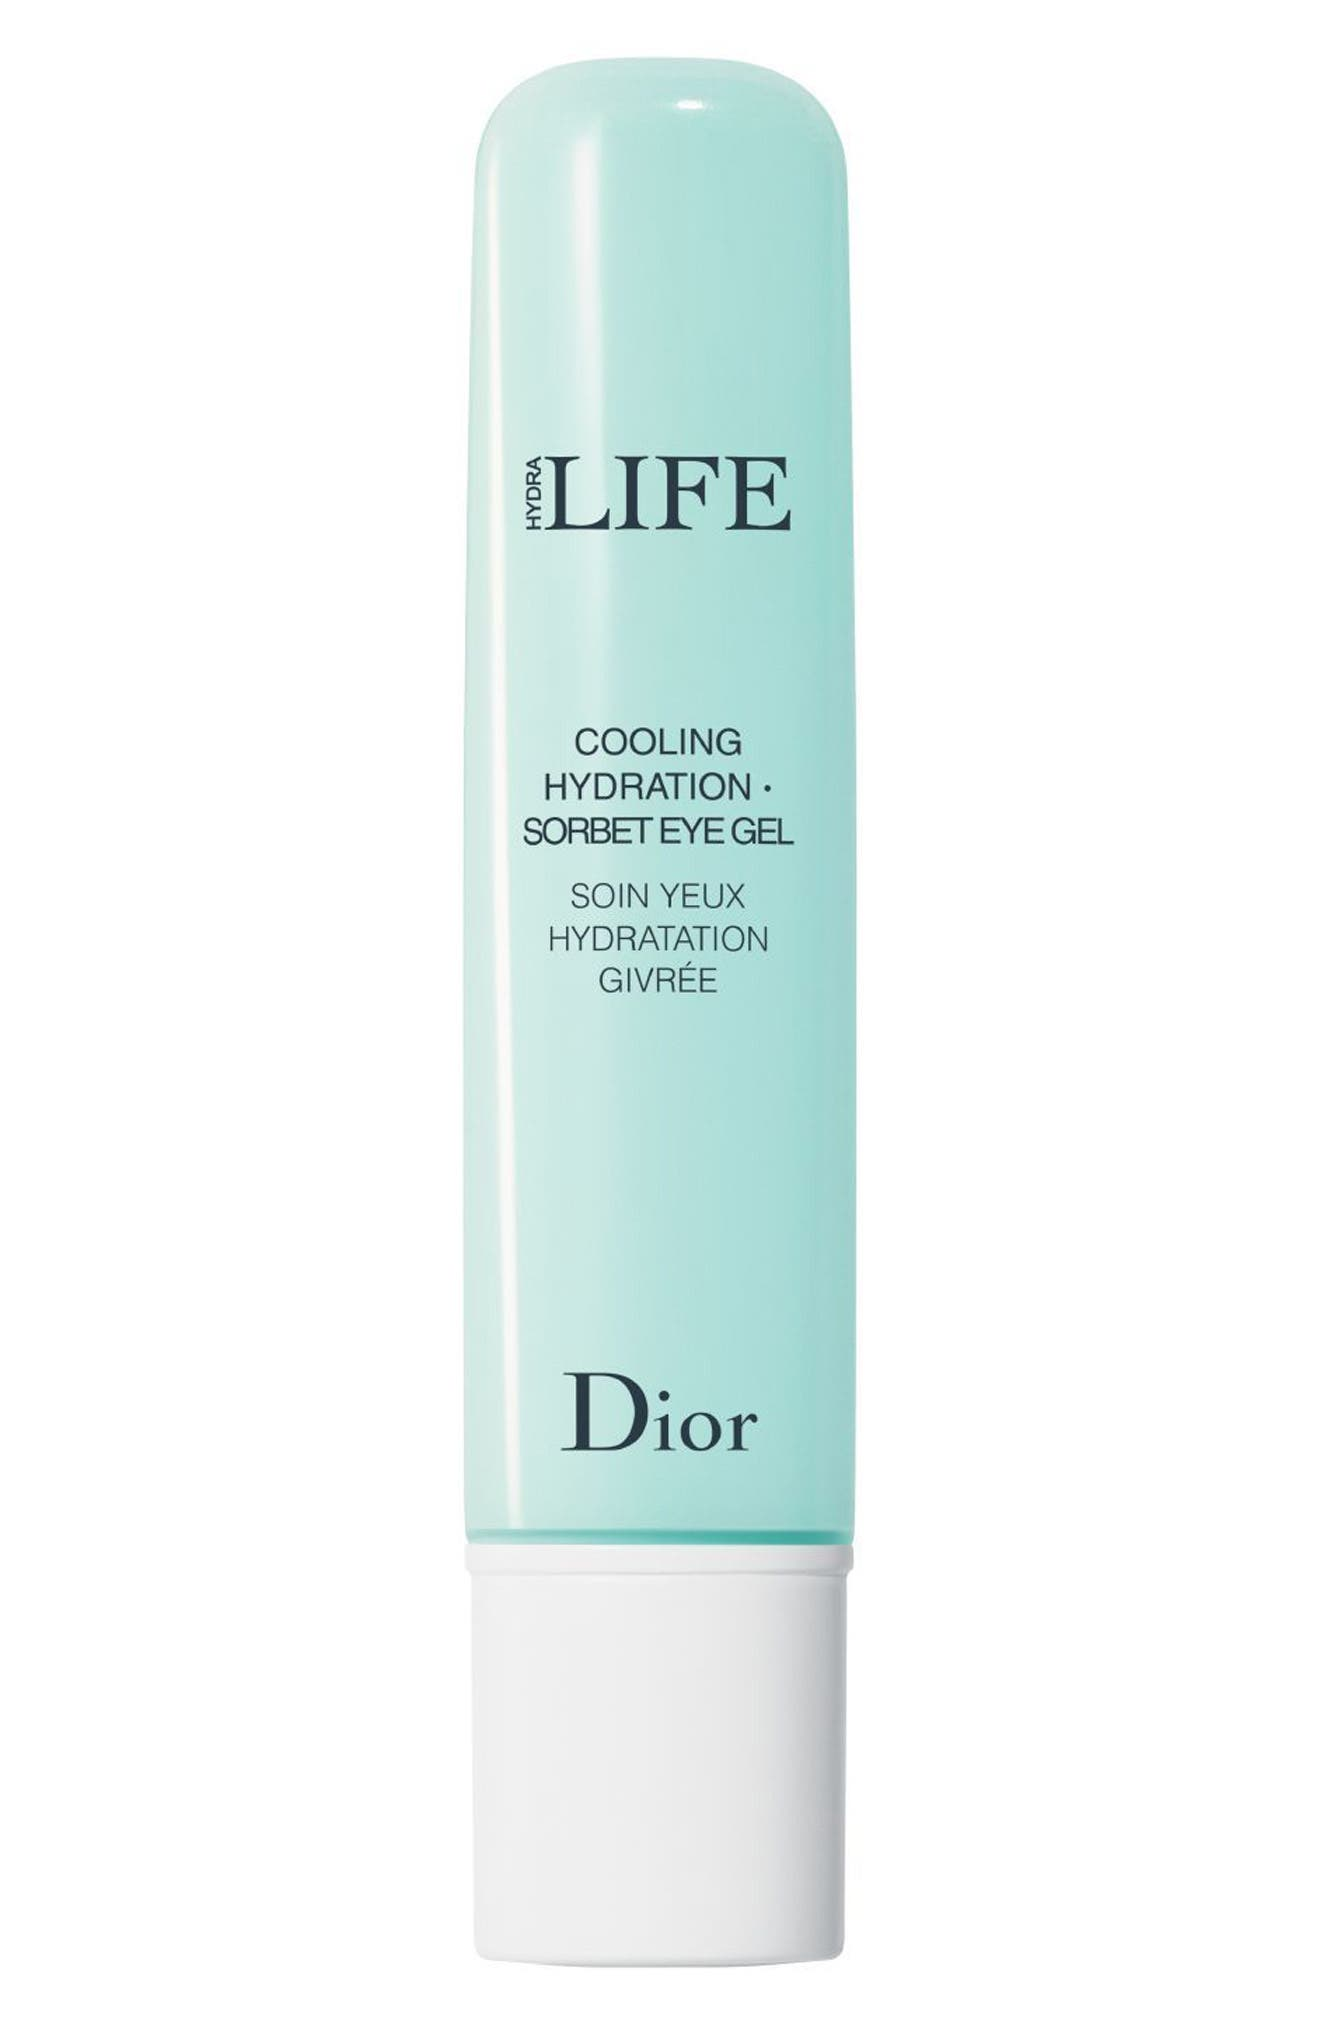 Hydra Life Cooling Hydration Sorbet Eye Gel,                             Main thumbnail 1, color,                             NO COLOR